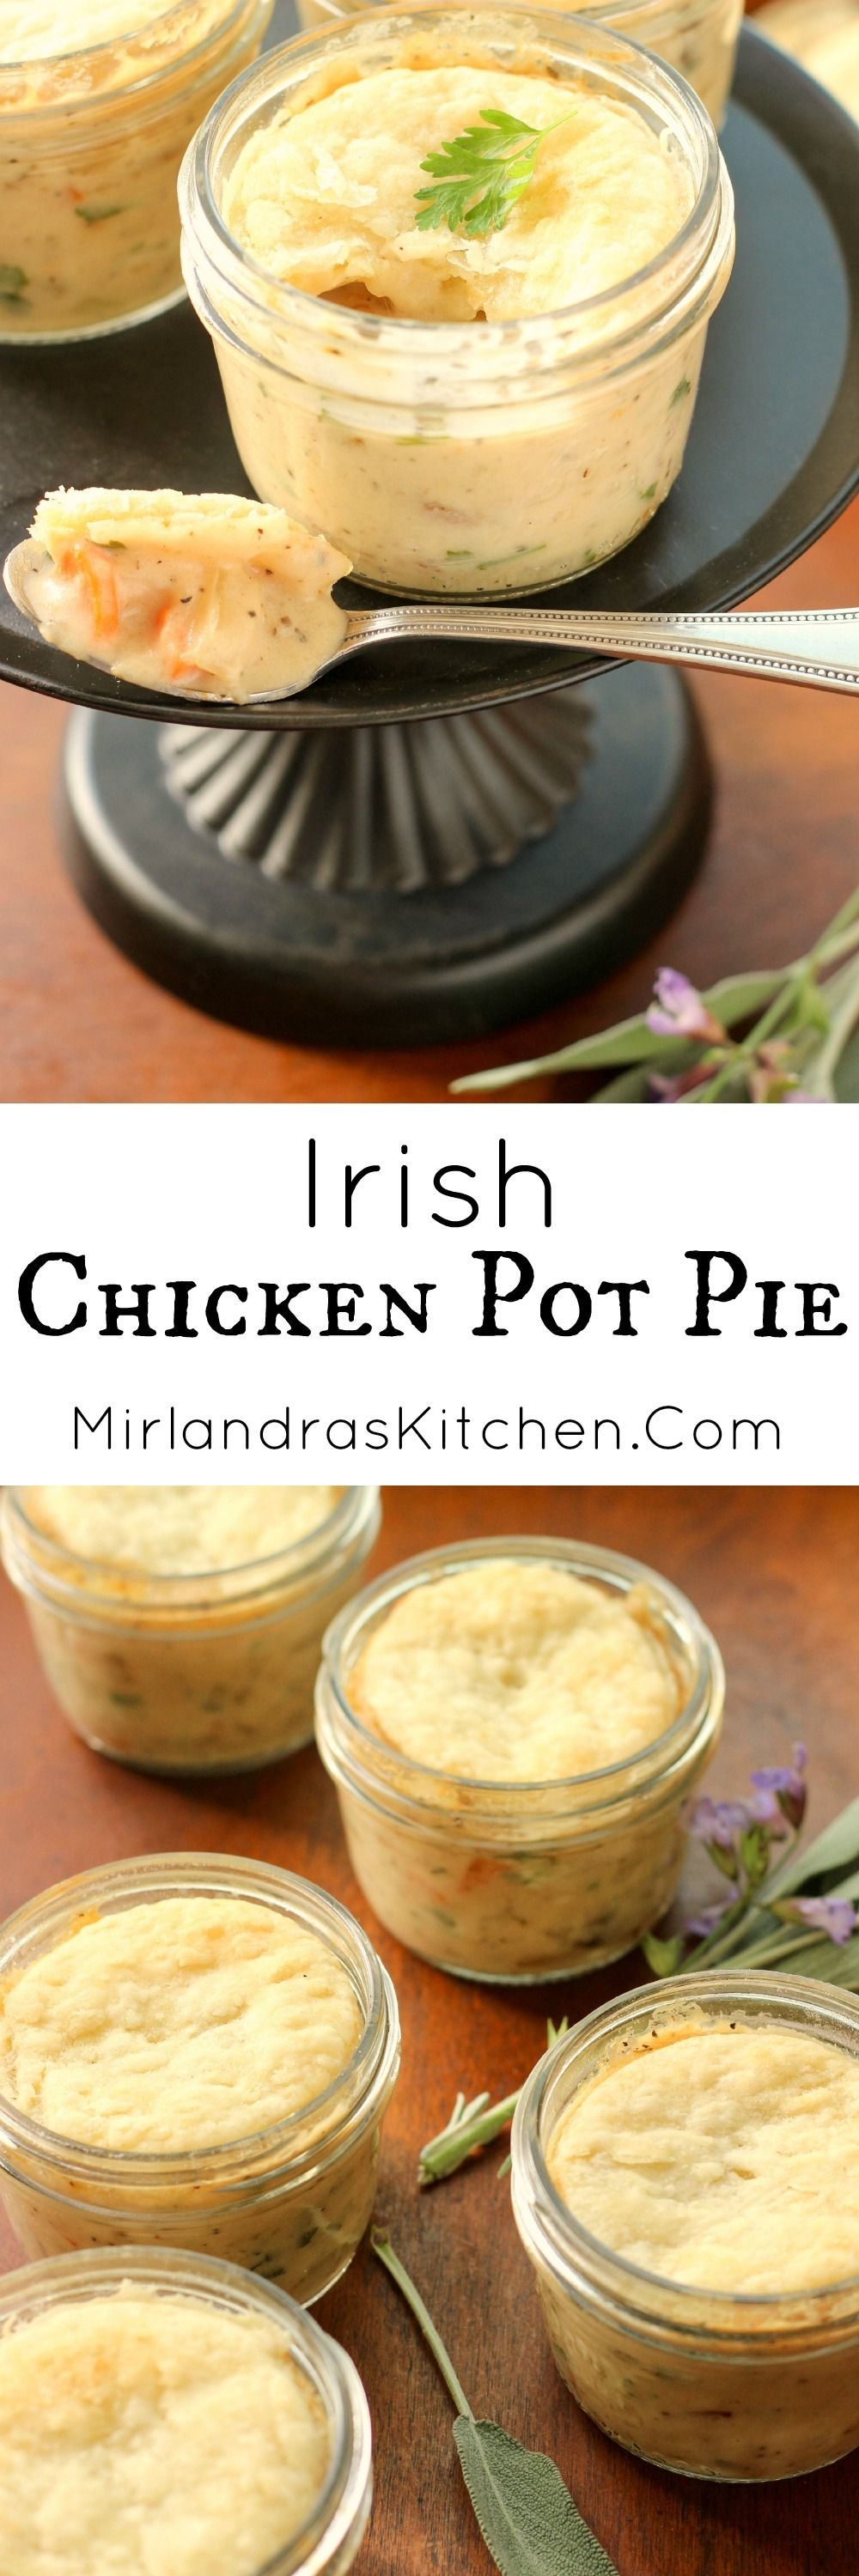 I Make This Irish Chicken Pot Pie From Scratch And It Really Is Comfort Food At